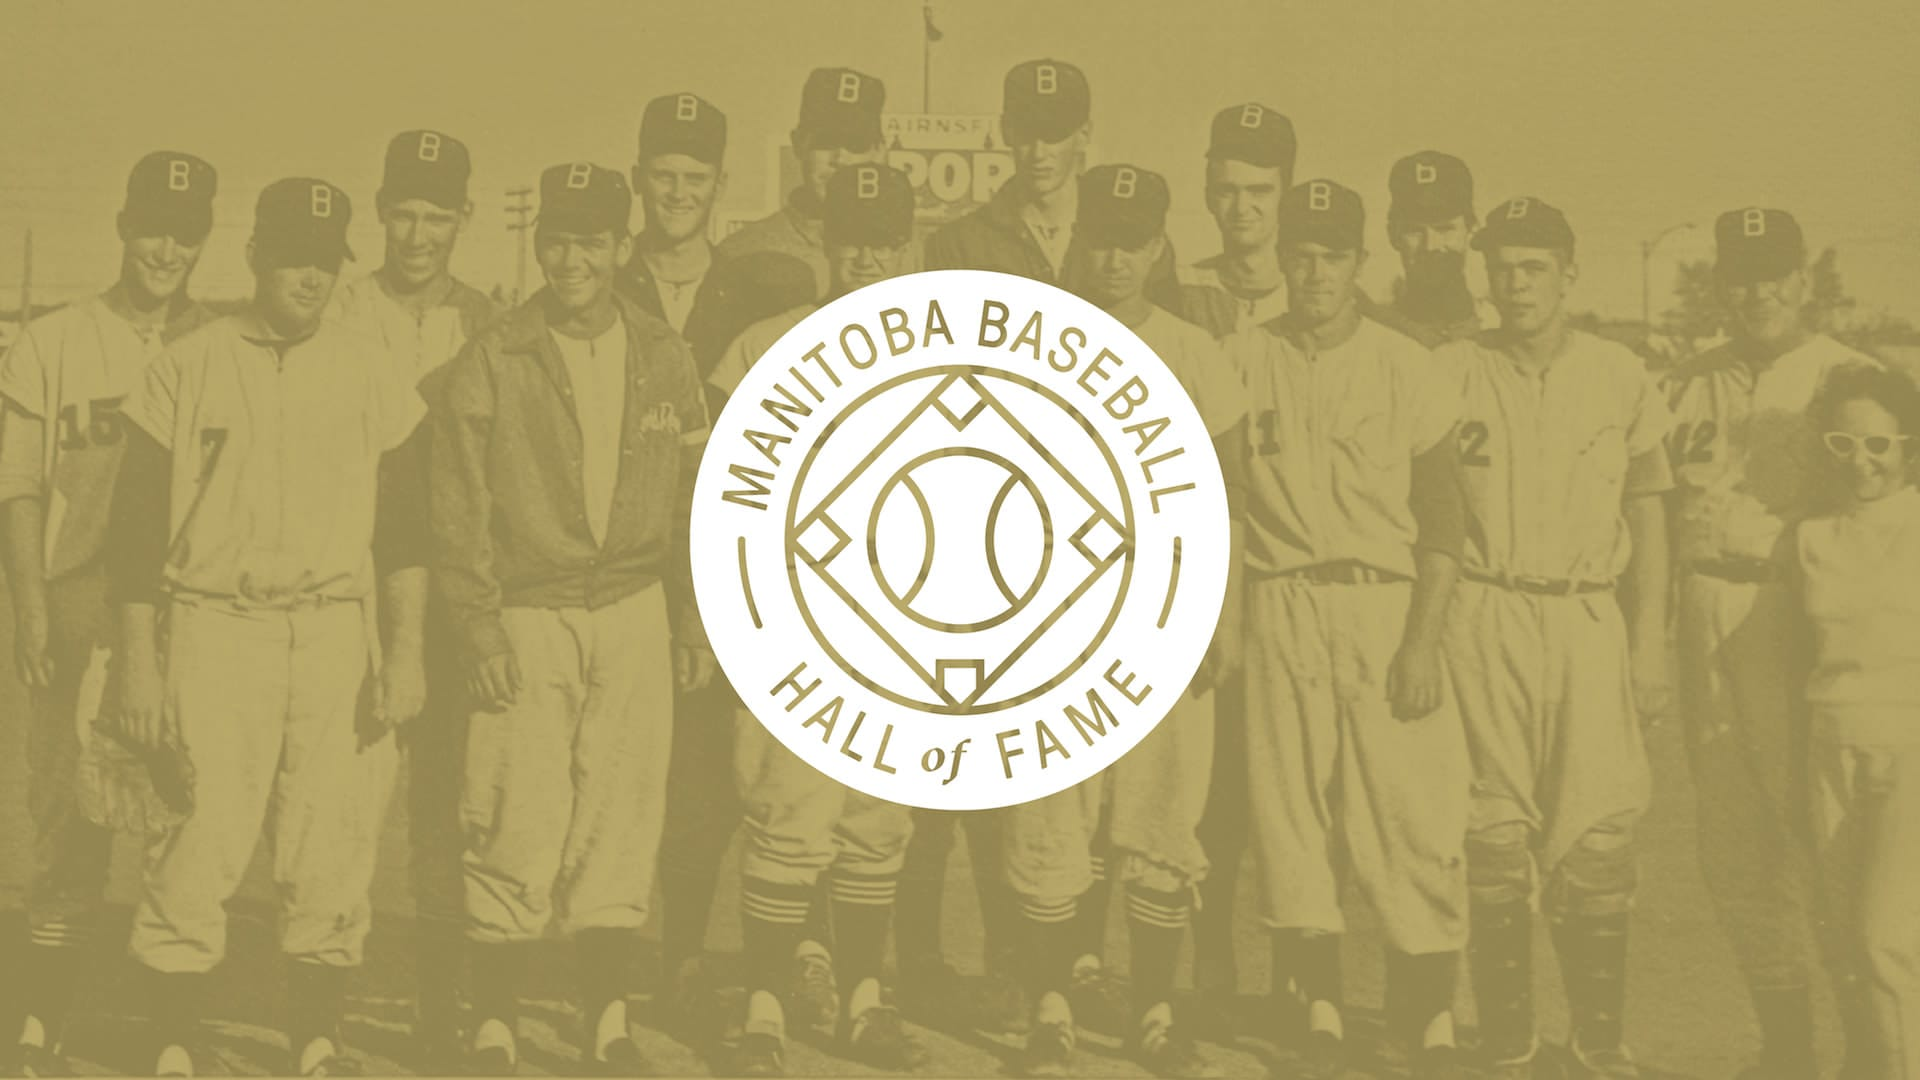 Manitoba Baseball Hall of Fame Logo